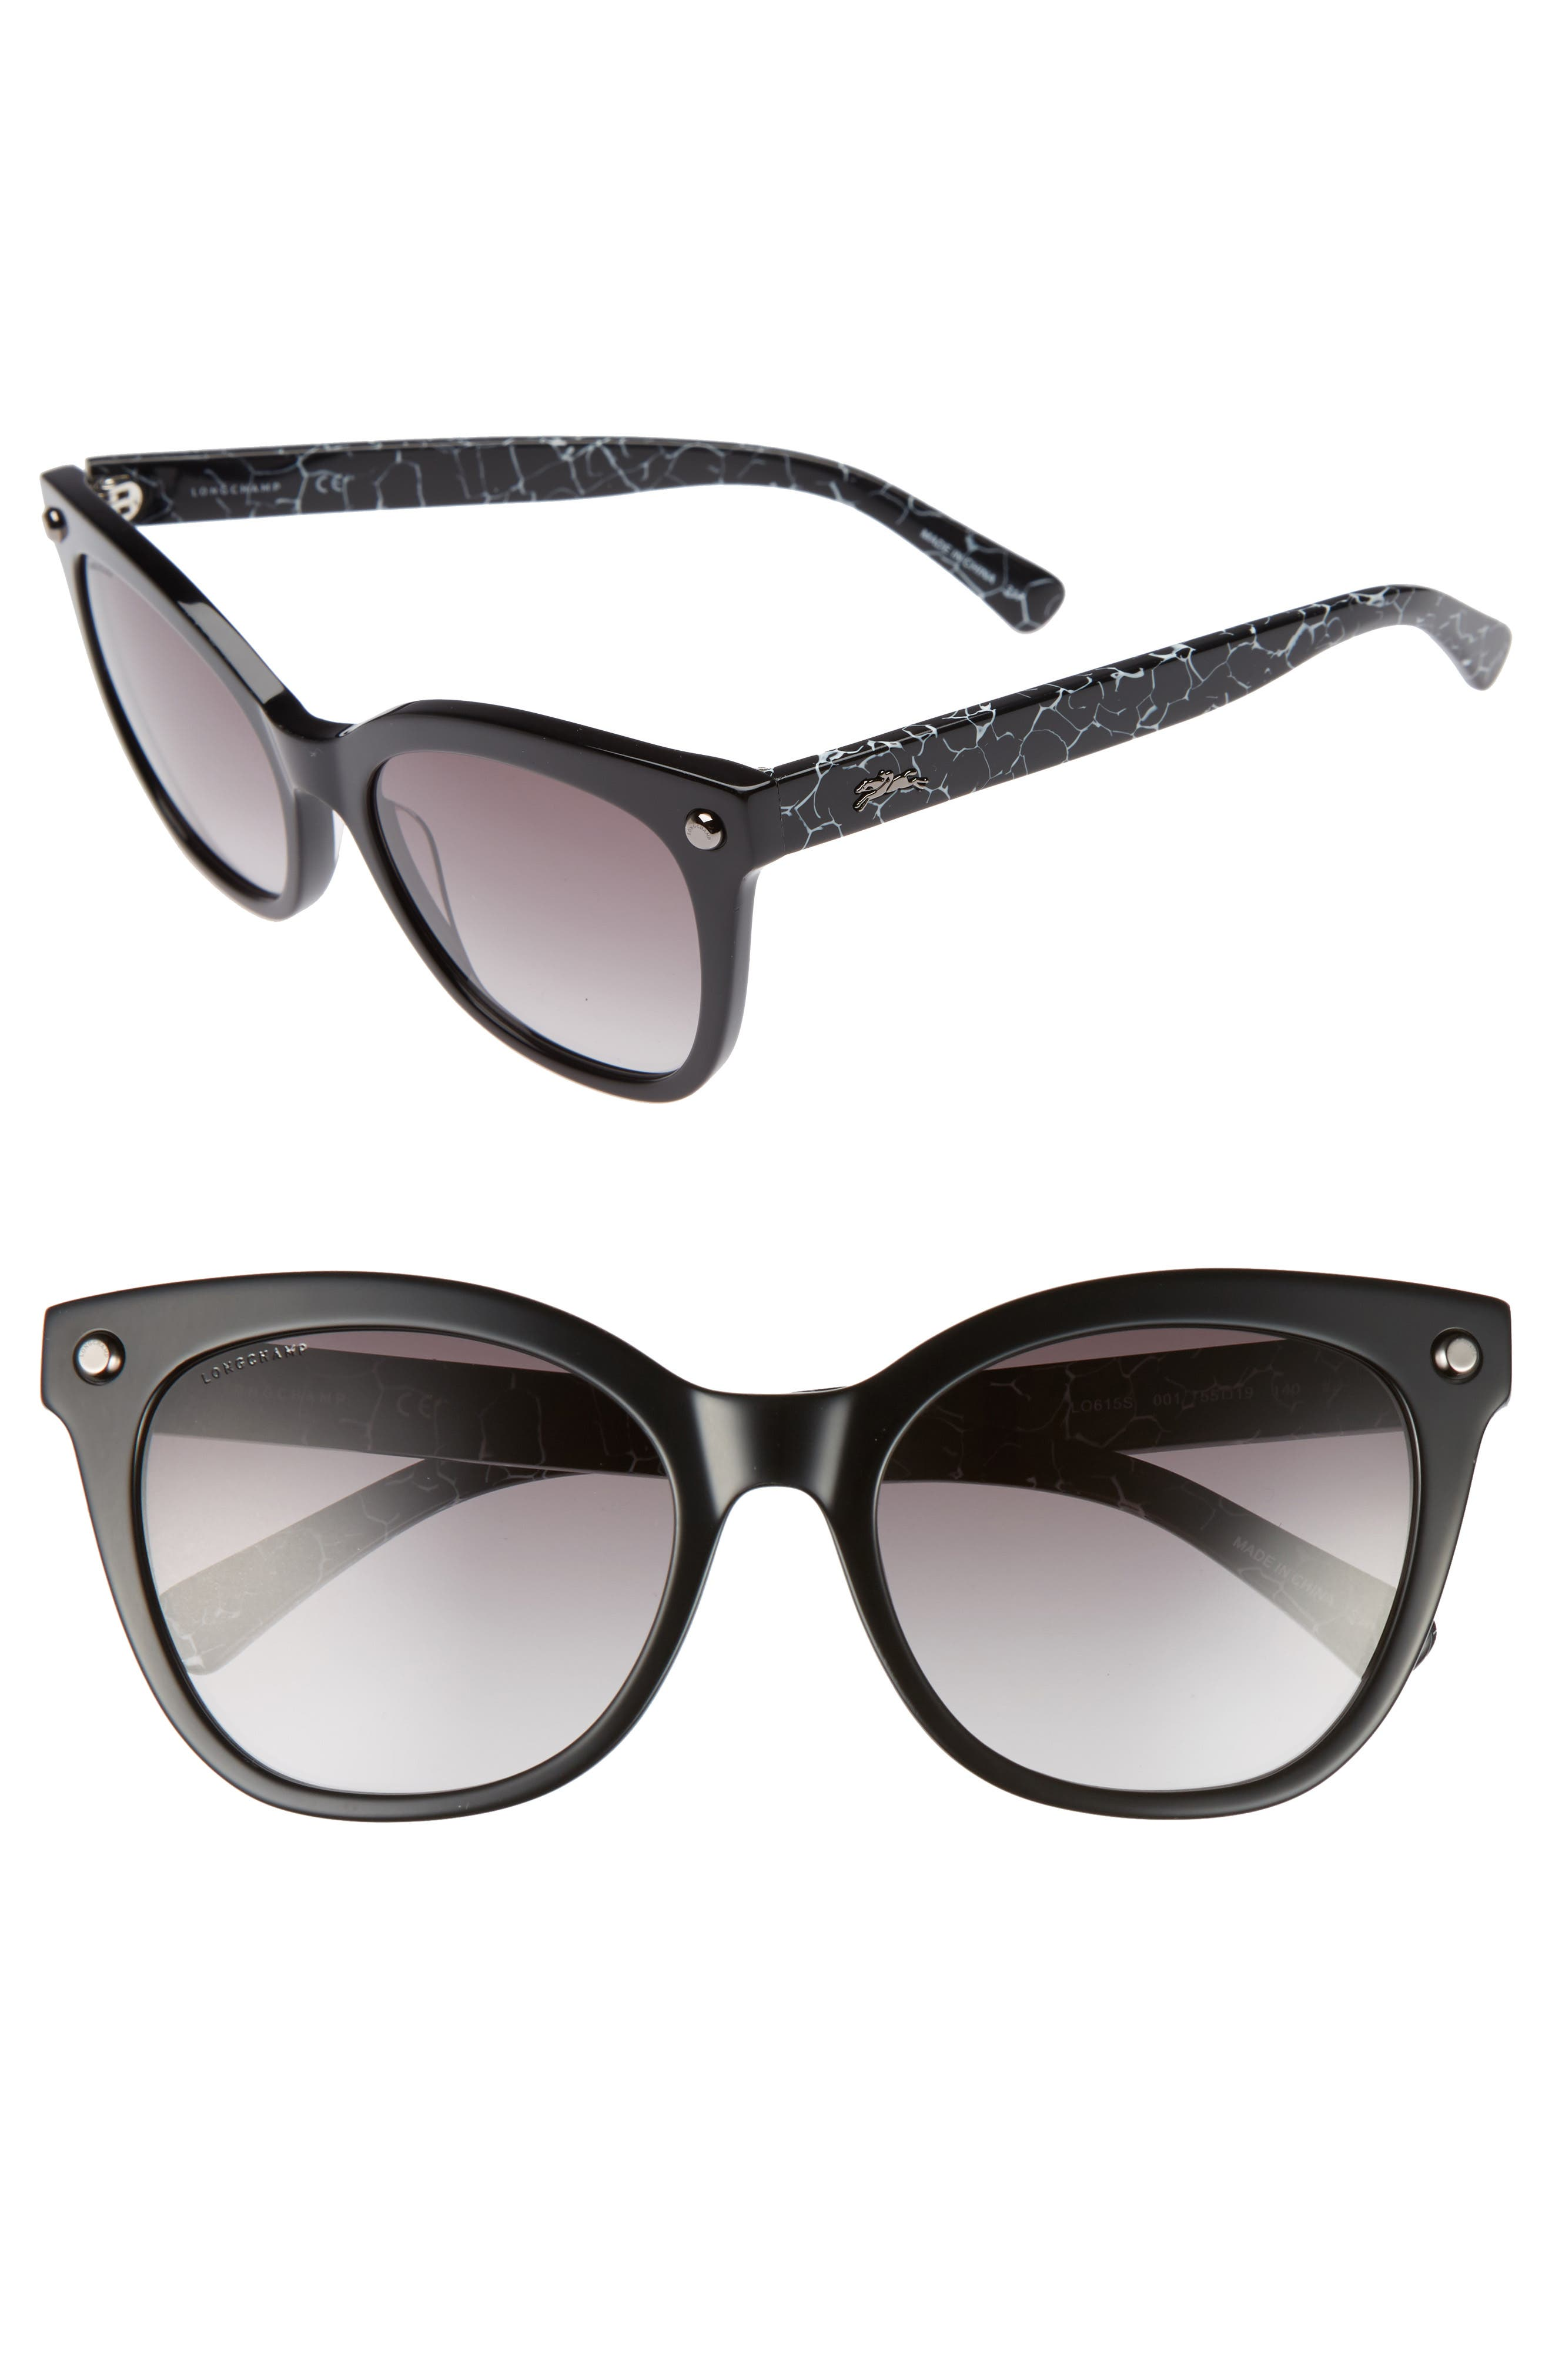 Longchamp 55mm Cat Eye Sunglasses